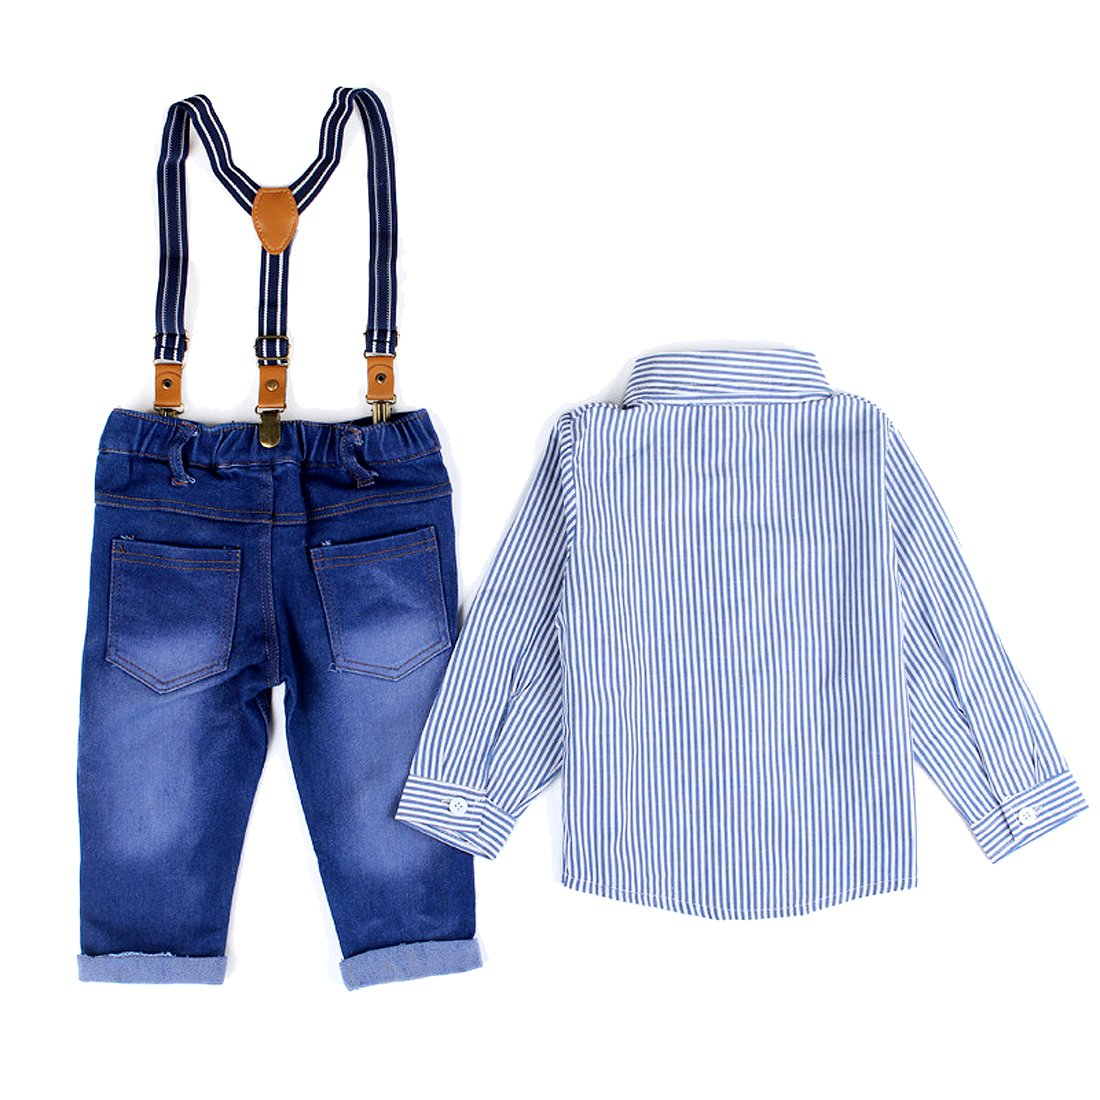 SOPO Cute Baby Boy Outfits with Suspenders Denim Jeans Set Blue